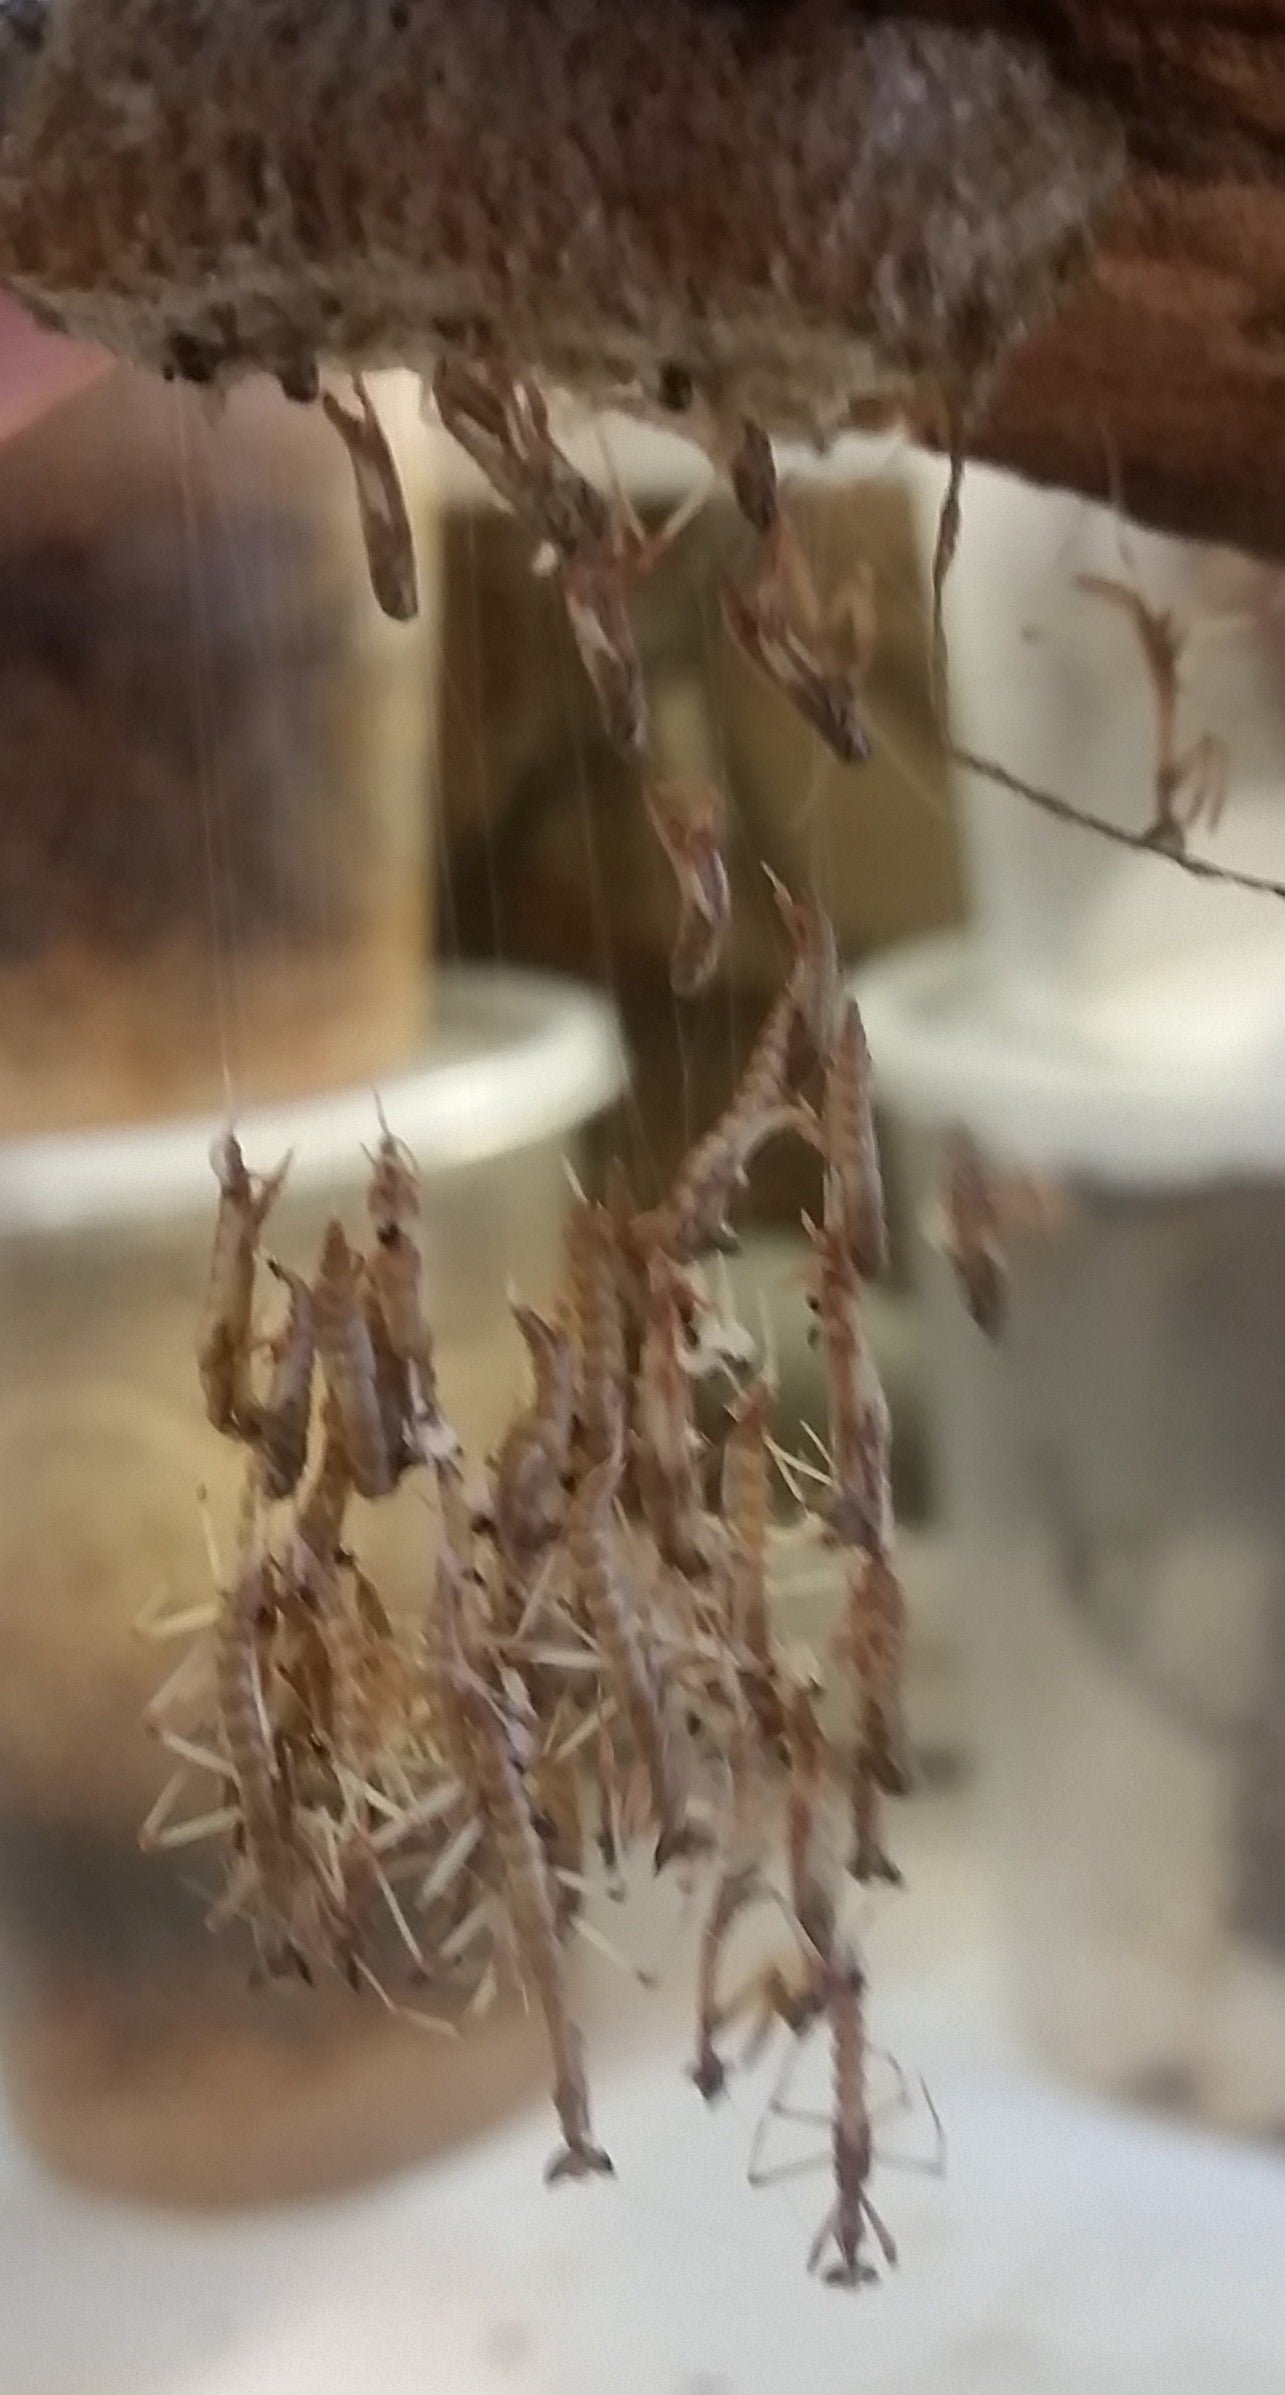 Giant African Stick Mantis (Heterochaeta sp.) nymphs hatching from ootheca | PanTerra Pets